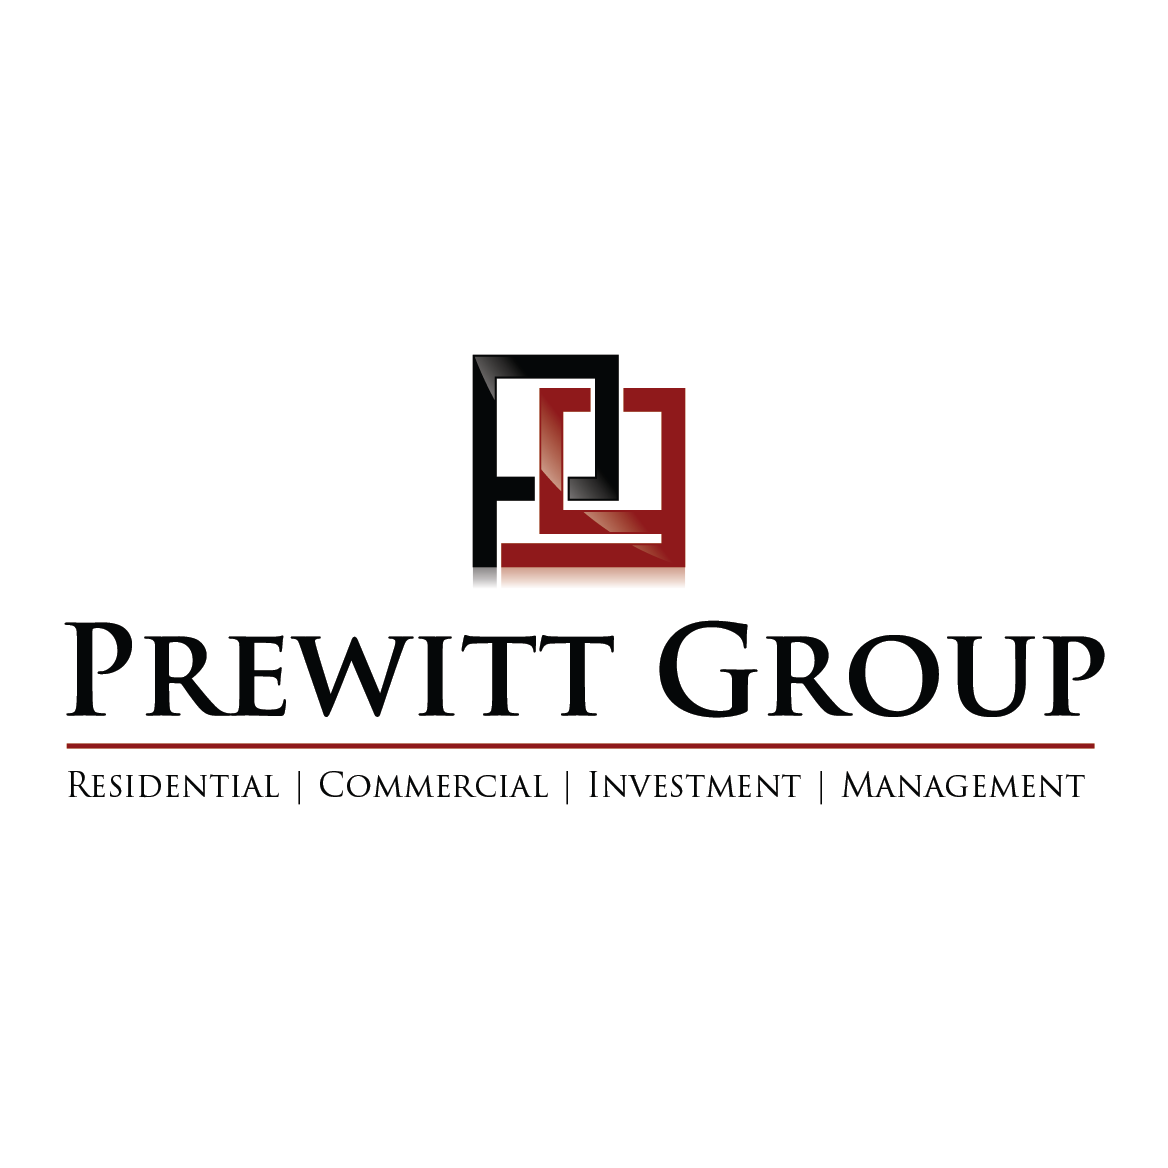 Prewitt GroupPrewitt Group